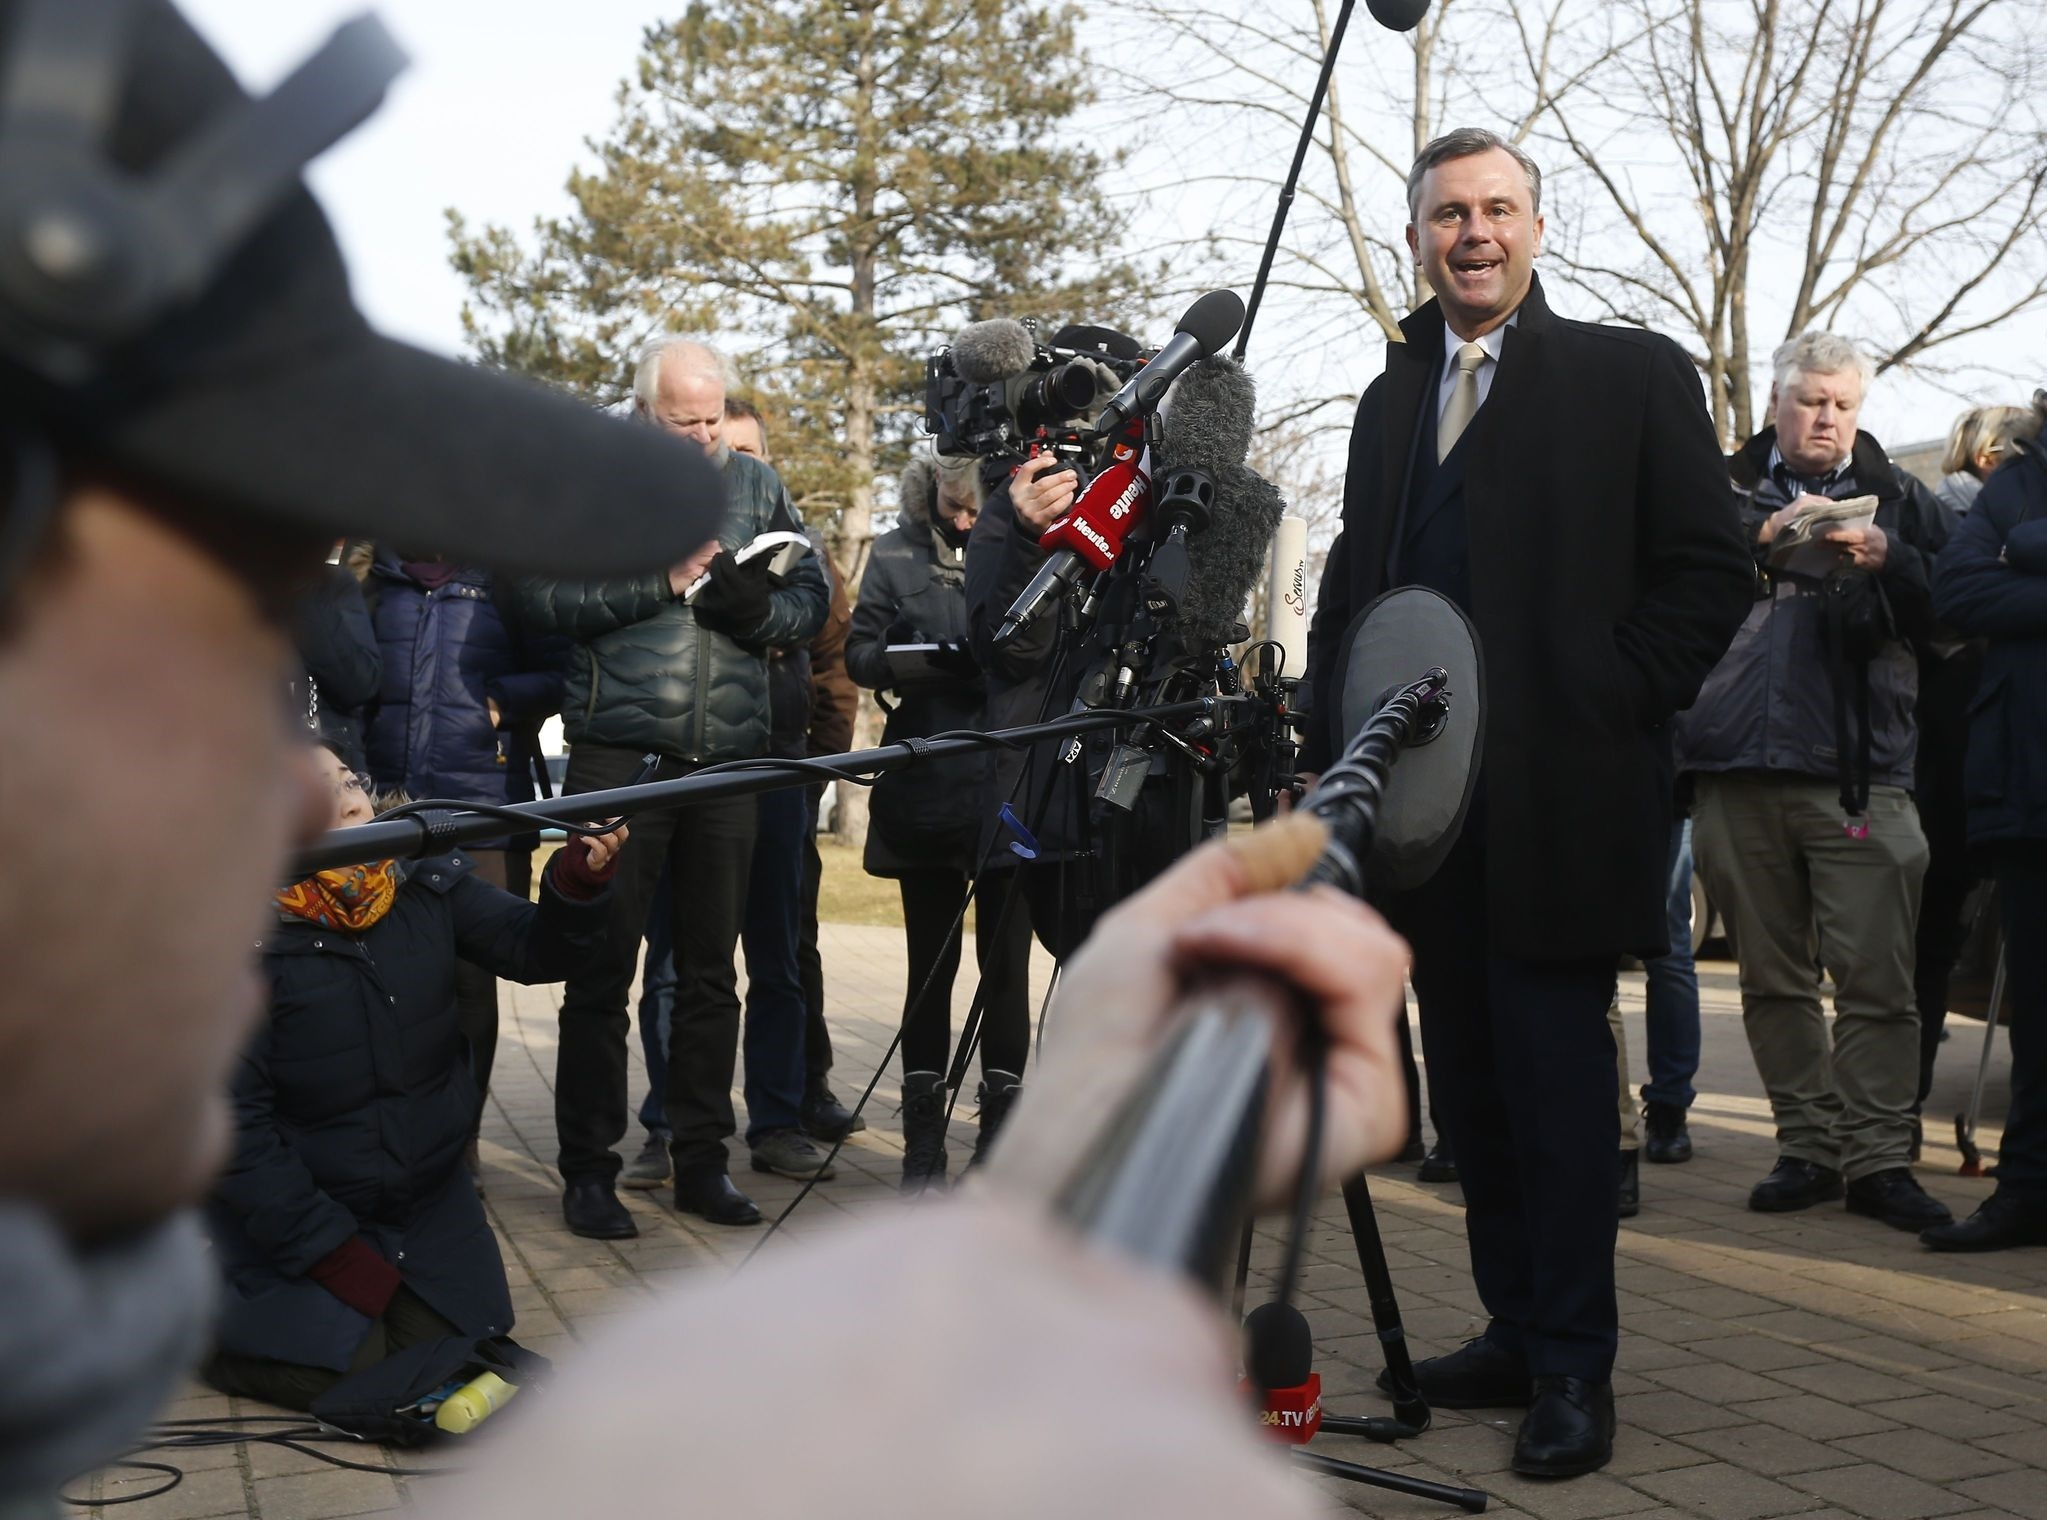 Austrian far-right Freedom Party (FPOe) presidential candidate Norbert Hofer talks to journalists in Pinkafeld, Austria on December 4, 2016. (AFP PHOTO)